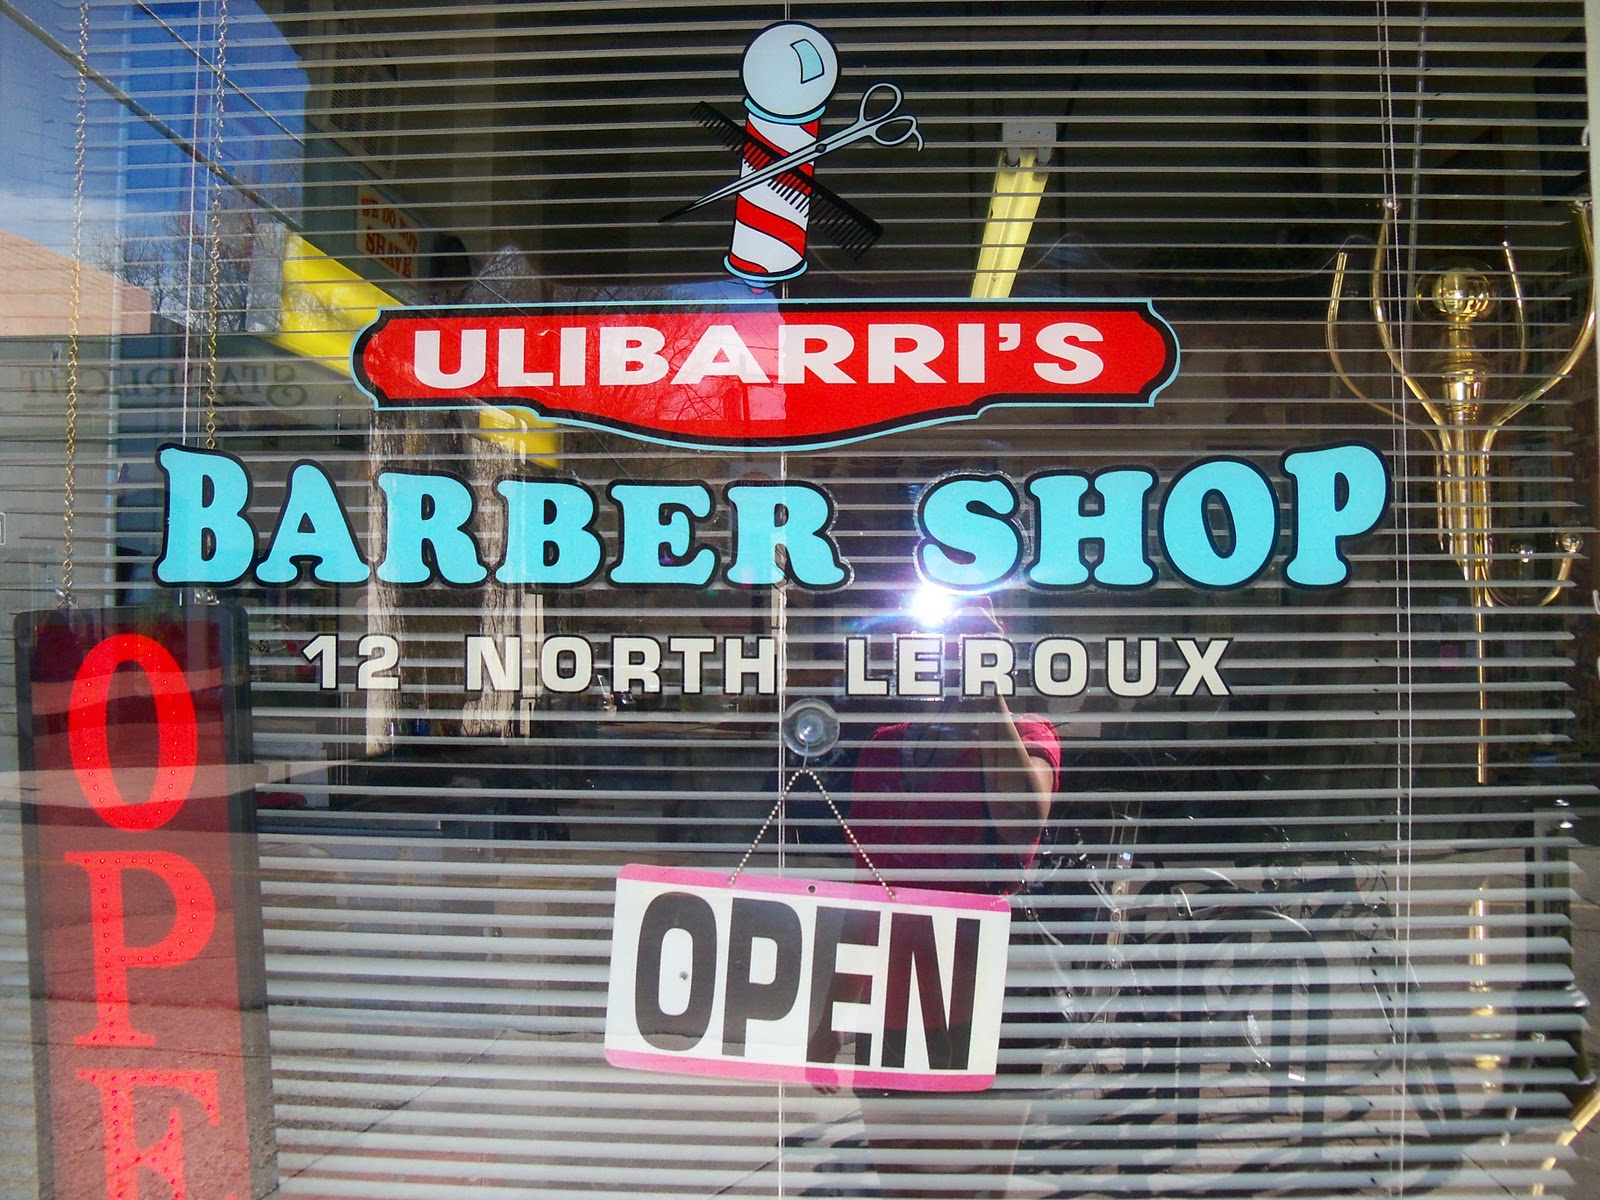 This type really works for the old fashioned barber shop window look